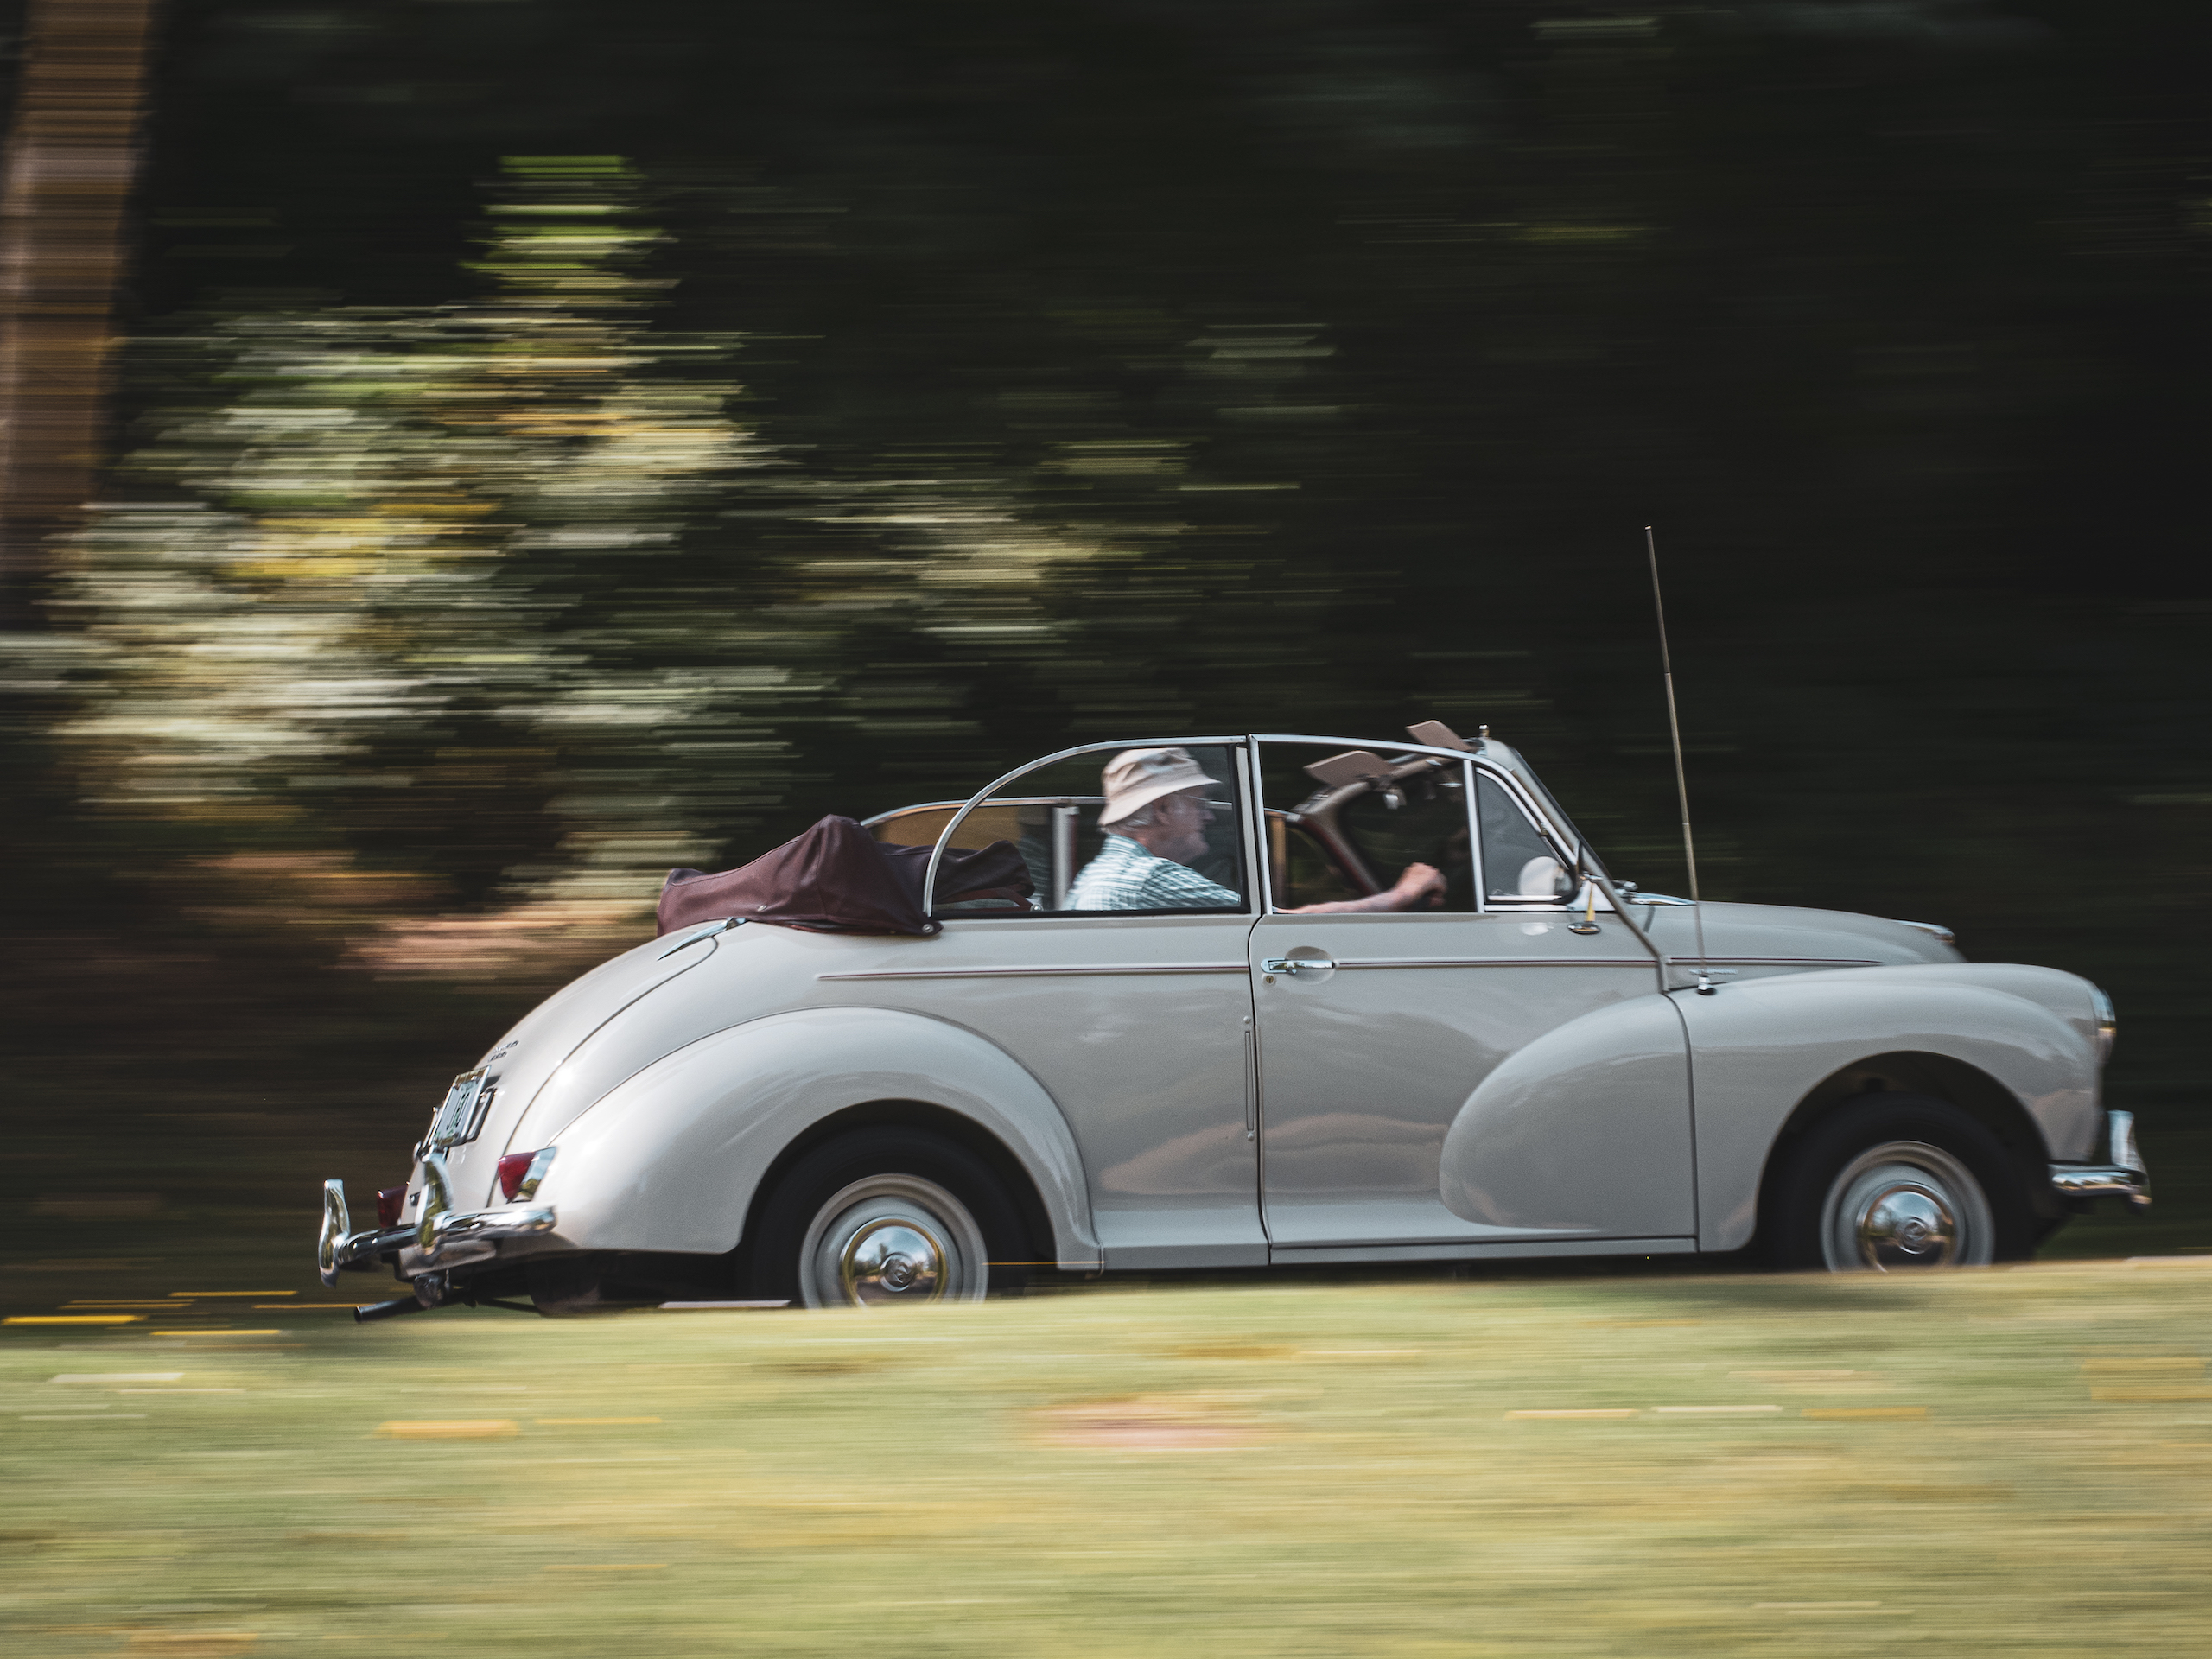 Morris Minor driving action